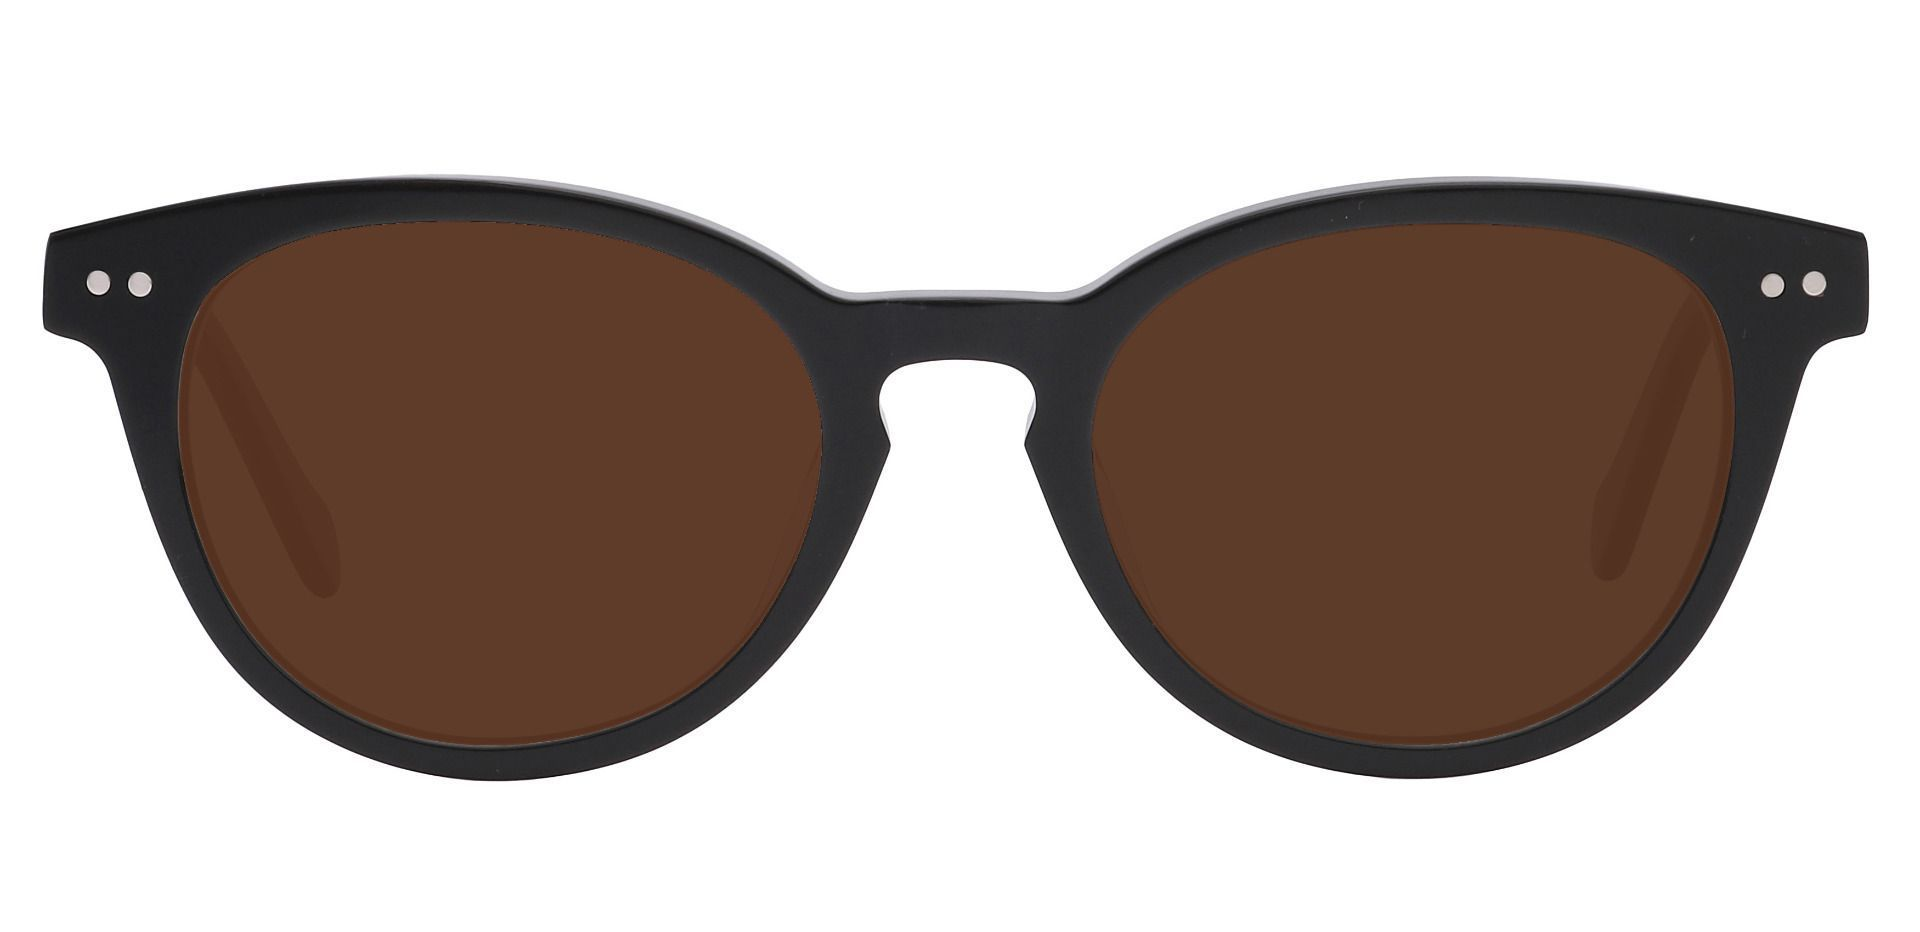 Forbes Oval Reading Sunglasses - Black Frame With Brown Lenses